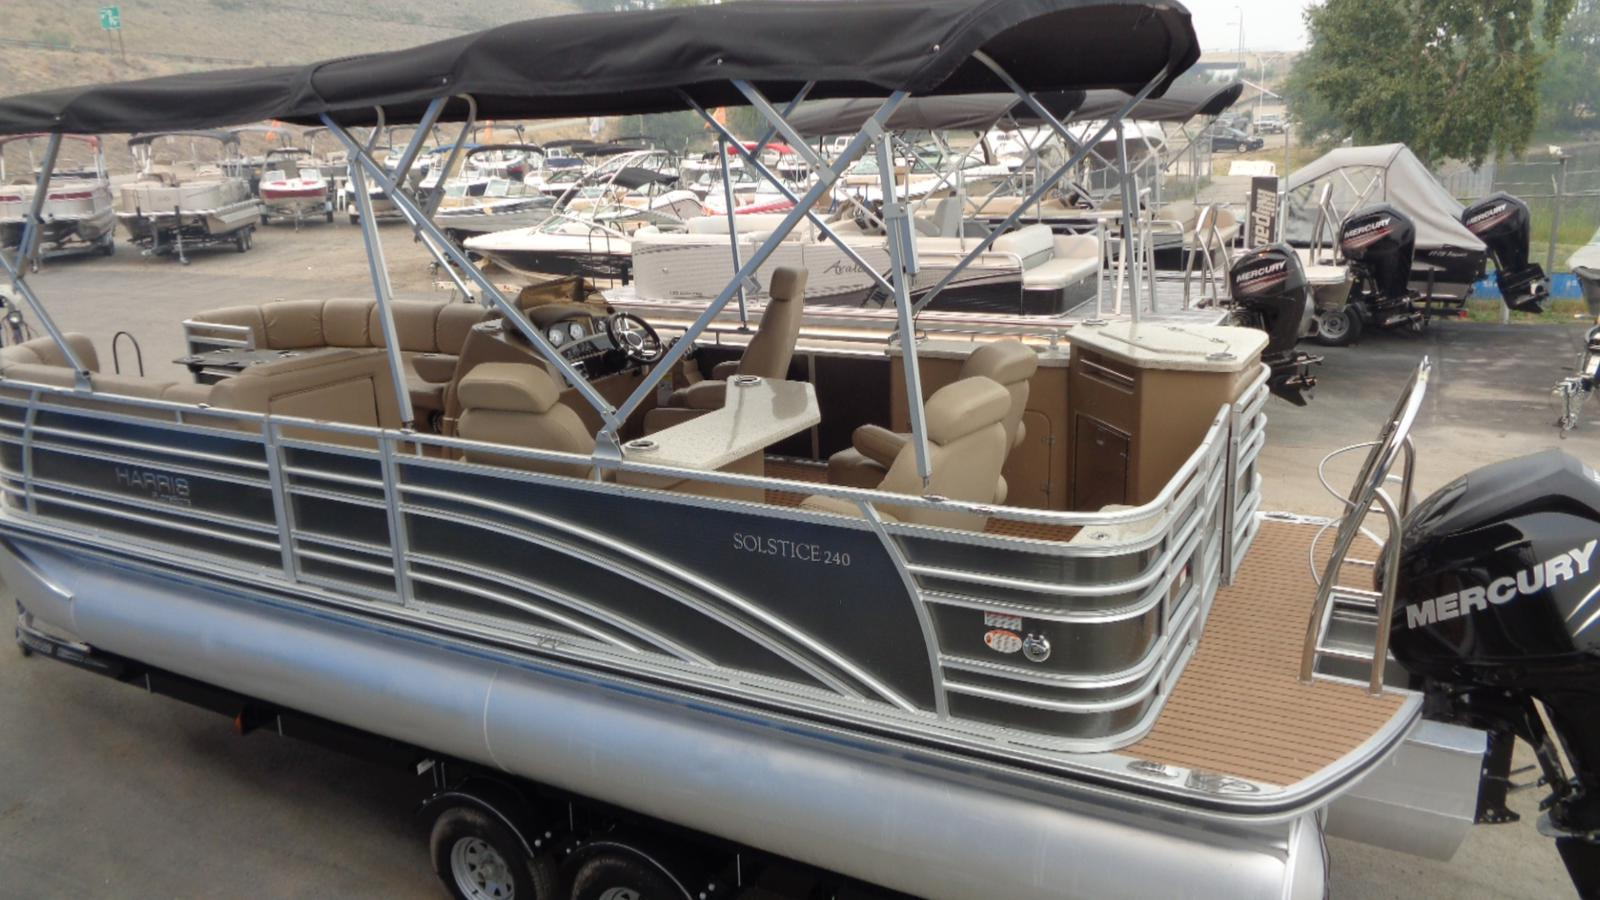 For Sale: 2014 Harris 240 Solstice 26ft<br/>Dockside Marine Centre, LTD.